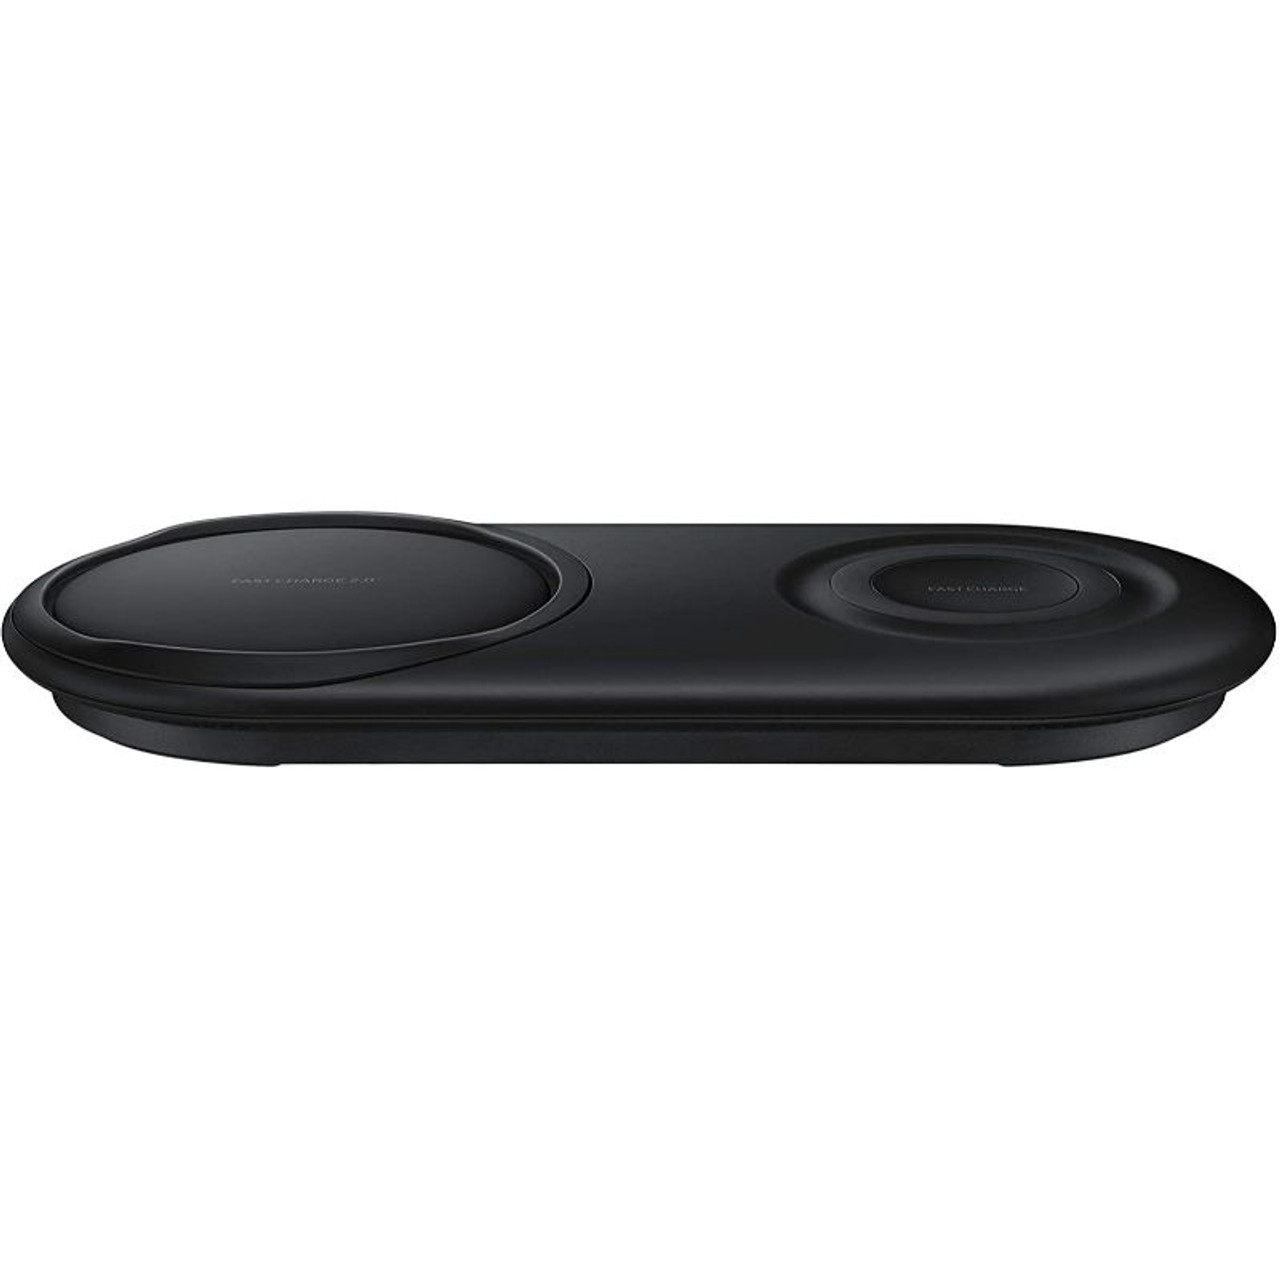 Samsung Wireless Fast Charger 2.0 Duo Pad